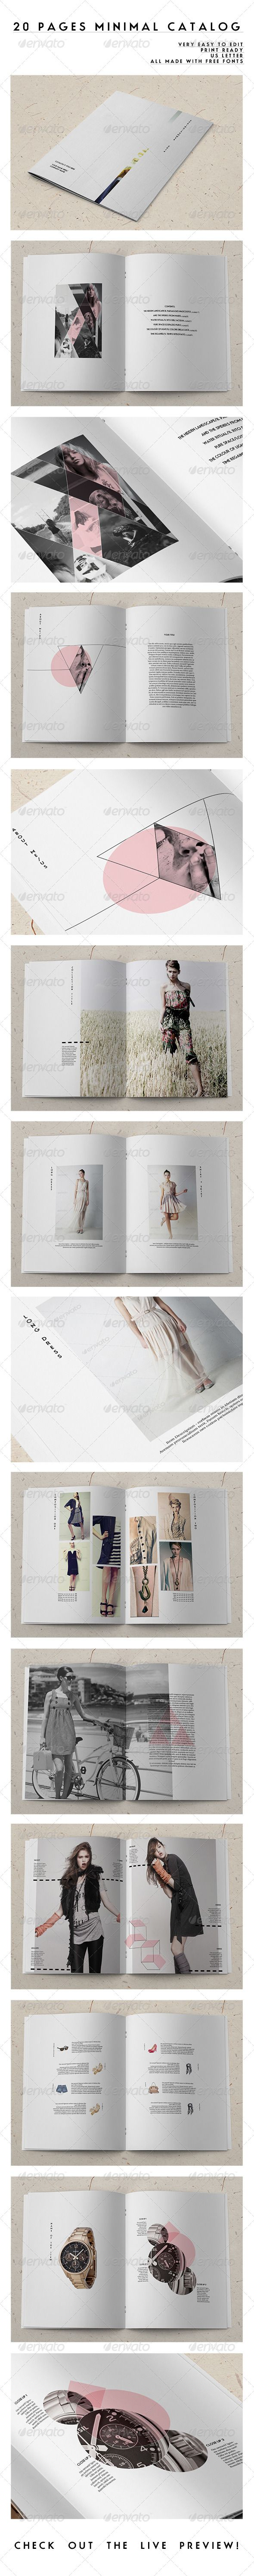 20 Pages Minimal Catalog - Catalogs Brochures | typography / graphic design @ envato |